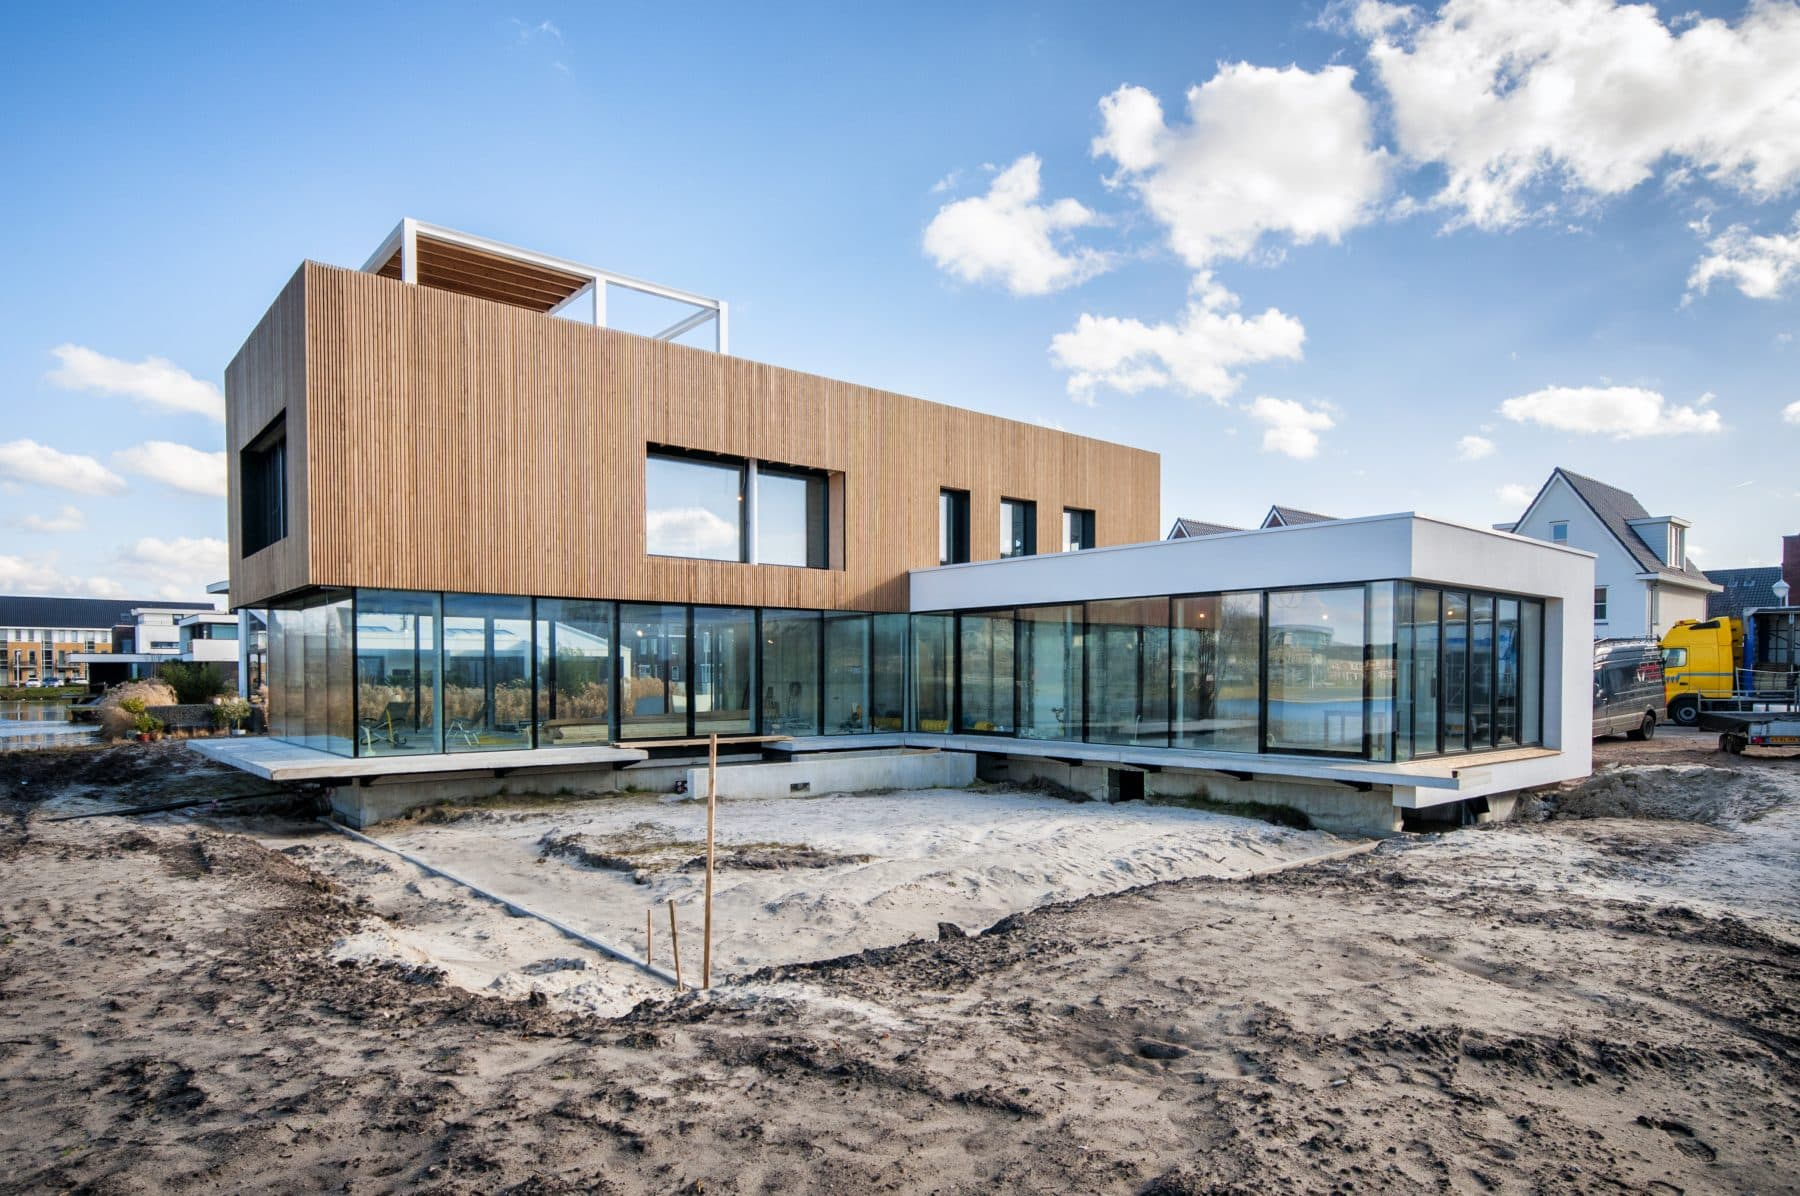 Project: The Lake House - Amersfoort Vathorst | Particuliere opdrachtgever